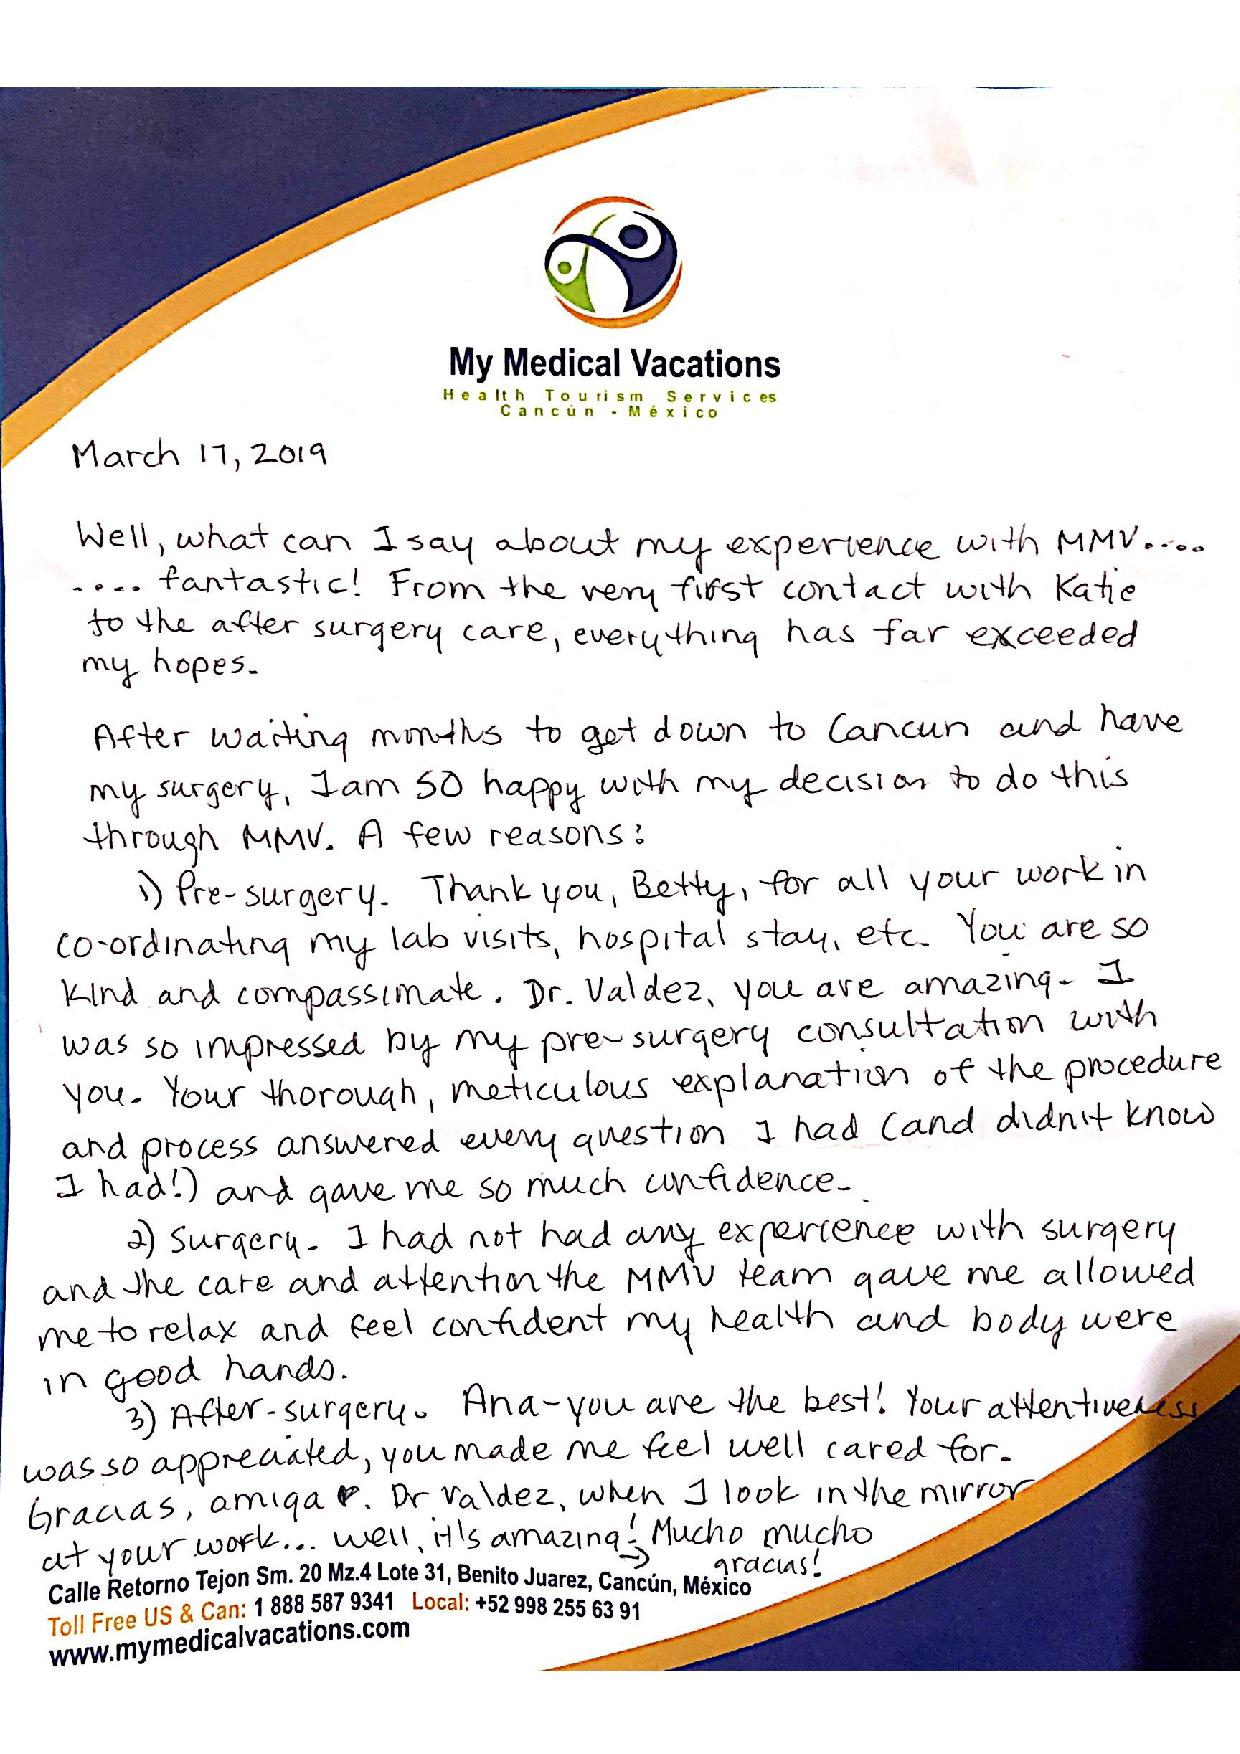 Medical Vacations Tourism Mexico Cancun Breast Implant Testimonial from Alberta 1